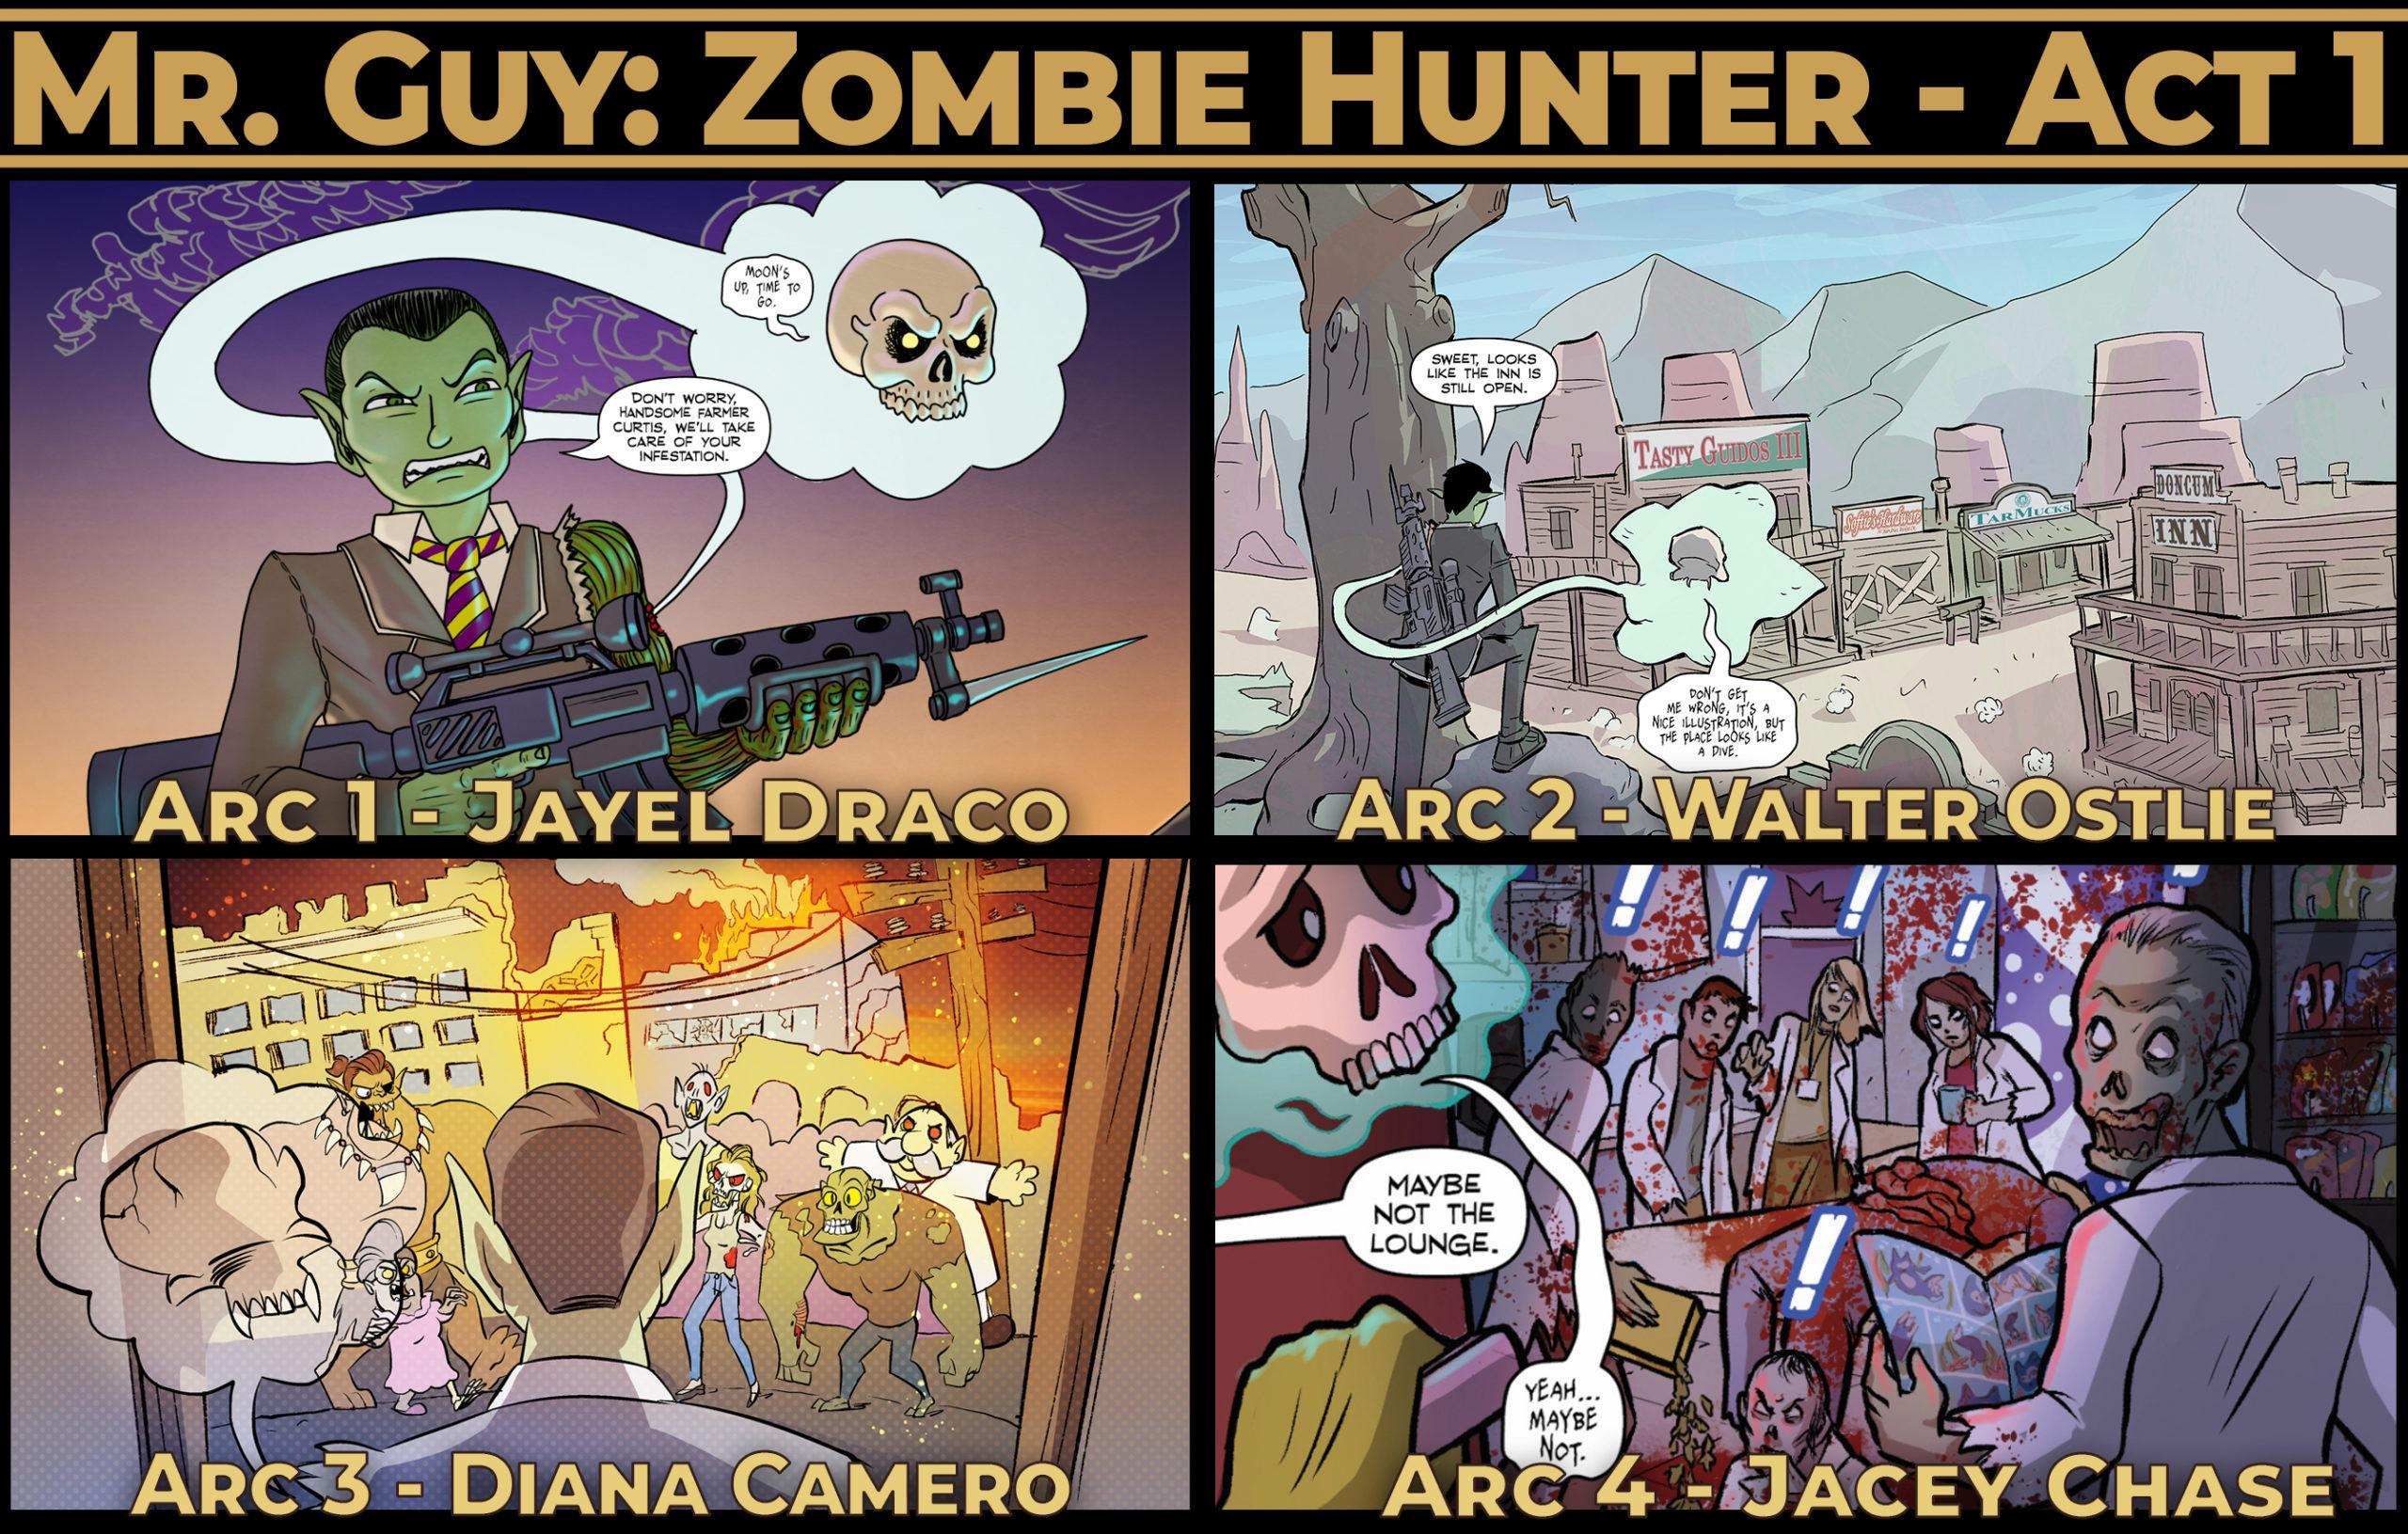 Mr. Guy: Zombie Hunter - Act 1 - all four arcs